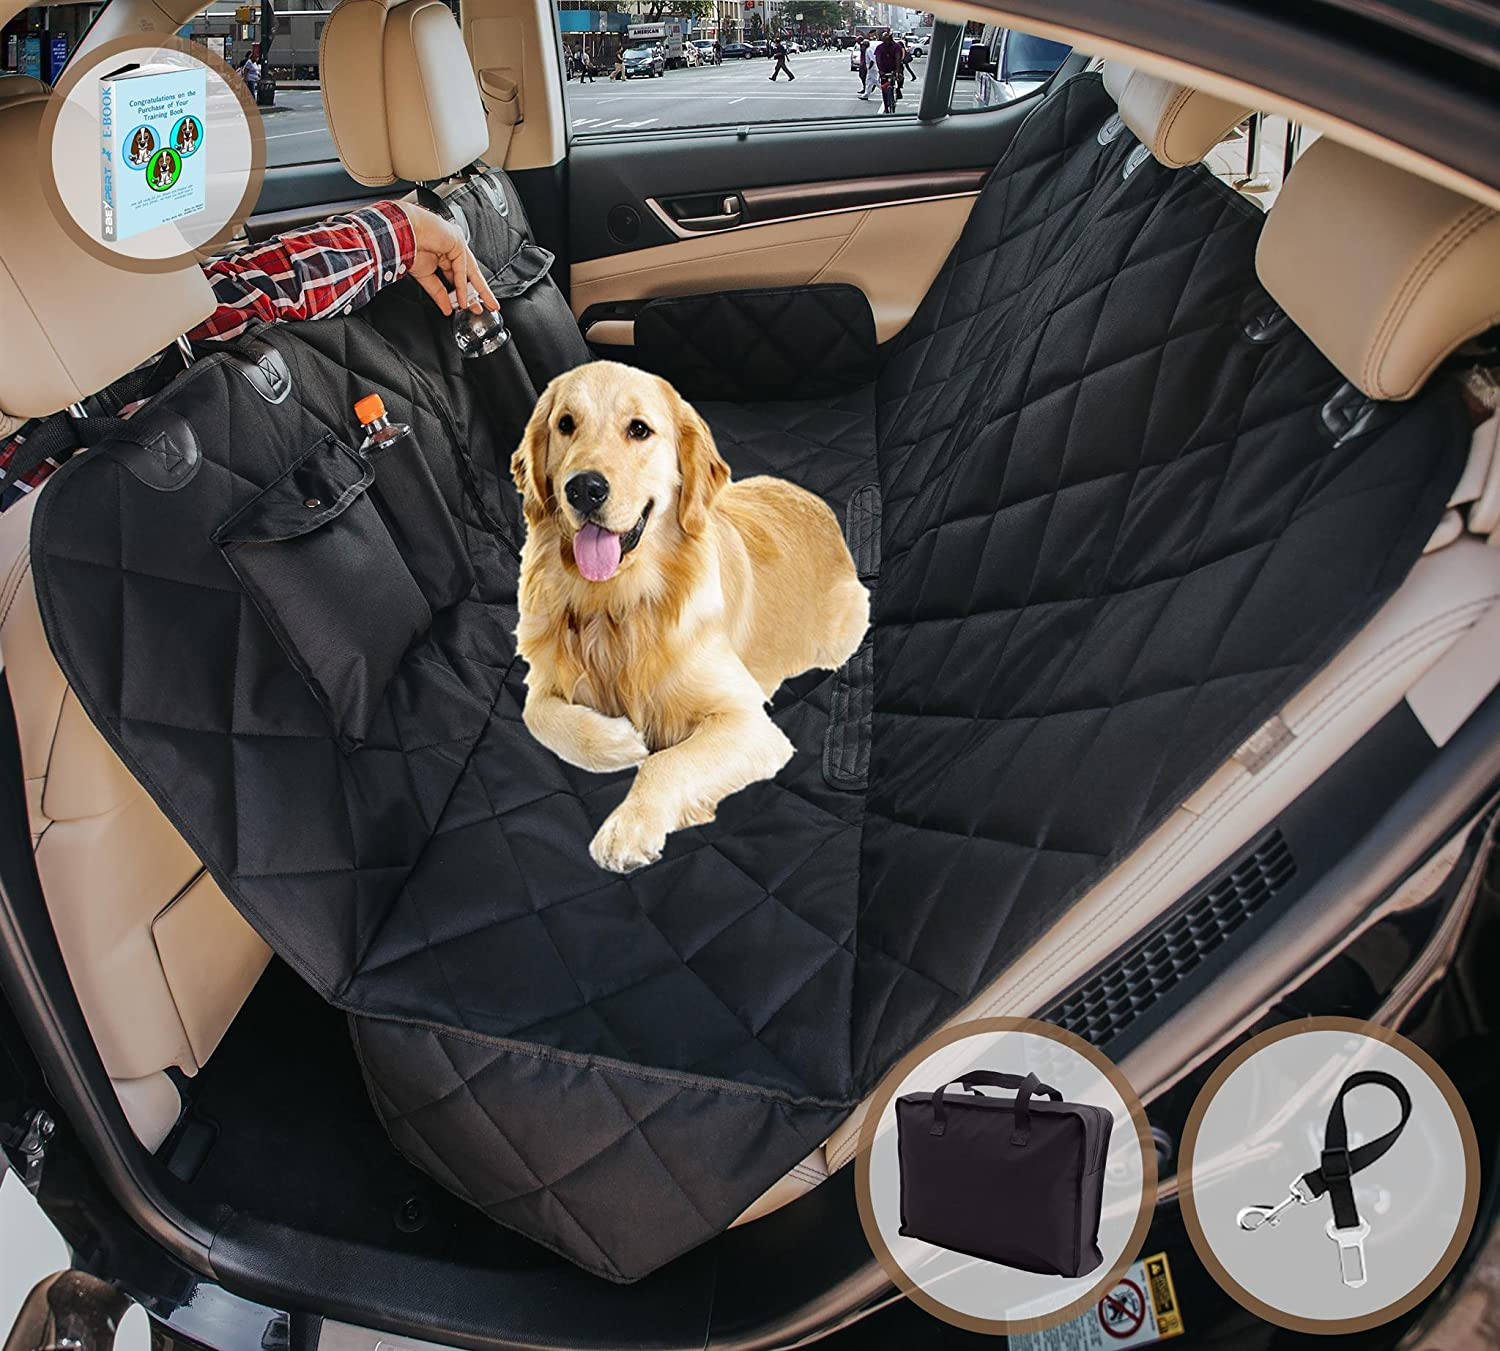 EVOest Dog Car Seat Cover, Pet Seat Cover for Cars Trucks SUV s, Hammock Convertible, 100 Waterproof Pet Back Seat Protector with Extra Side Flaps, Bonus Pet Seat Belt Tote Bag